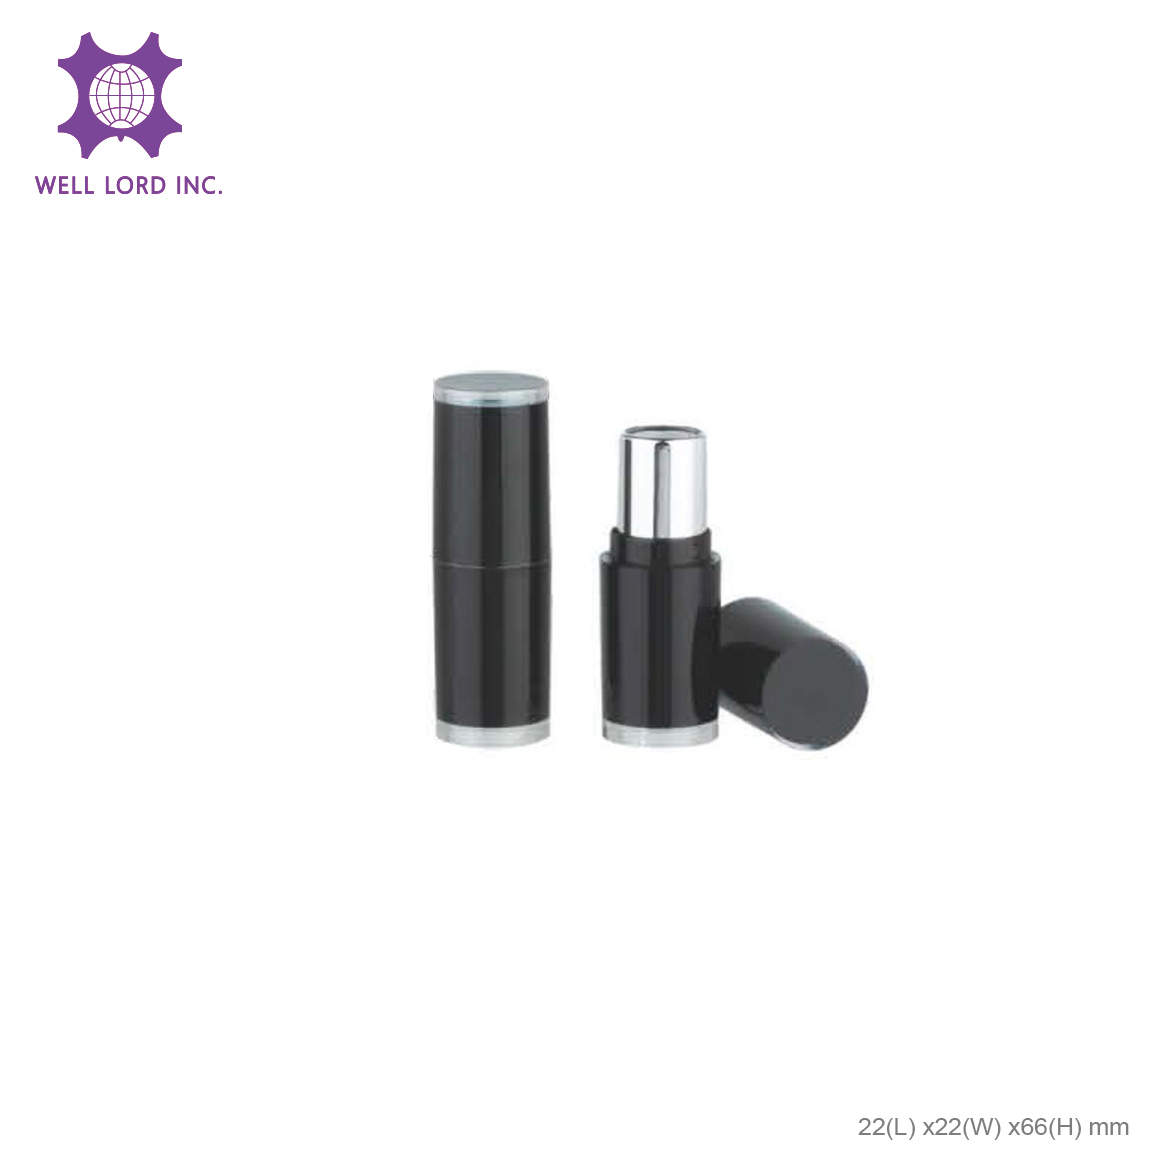 Ultimate clear case screw cap private label empty lipstick case wholesale